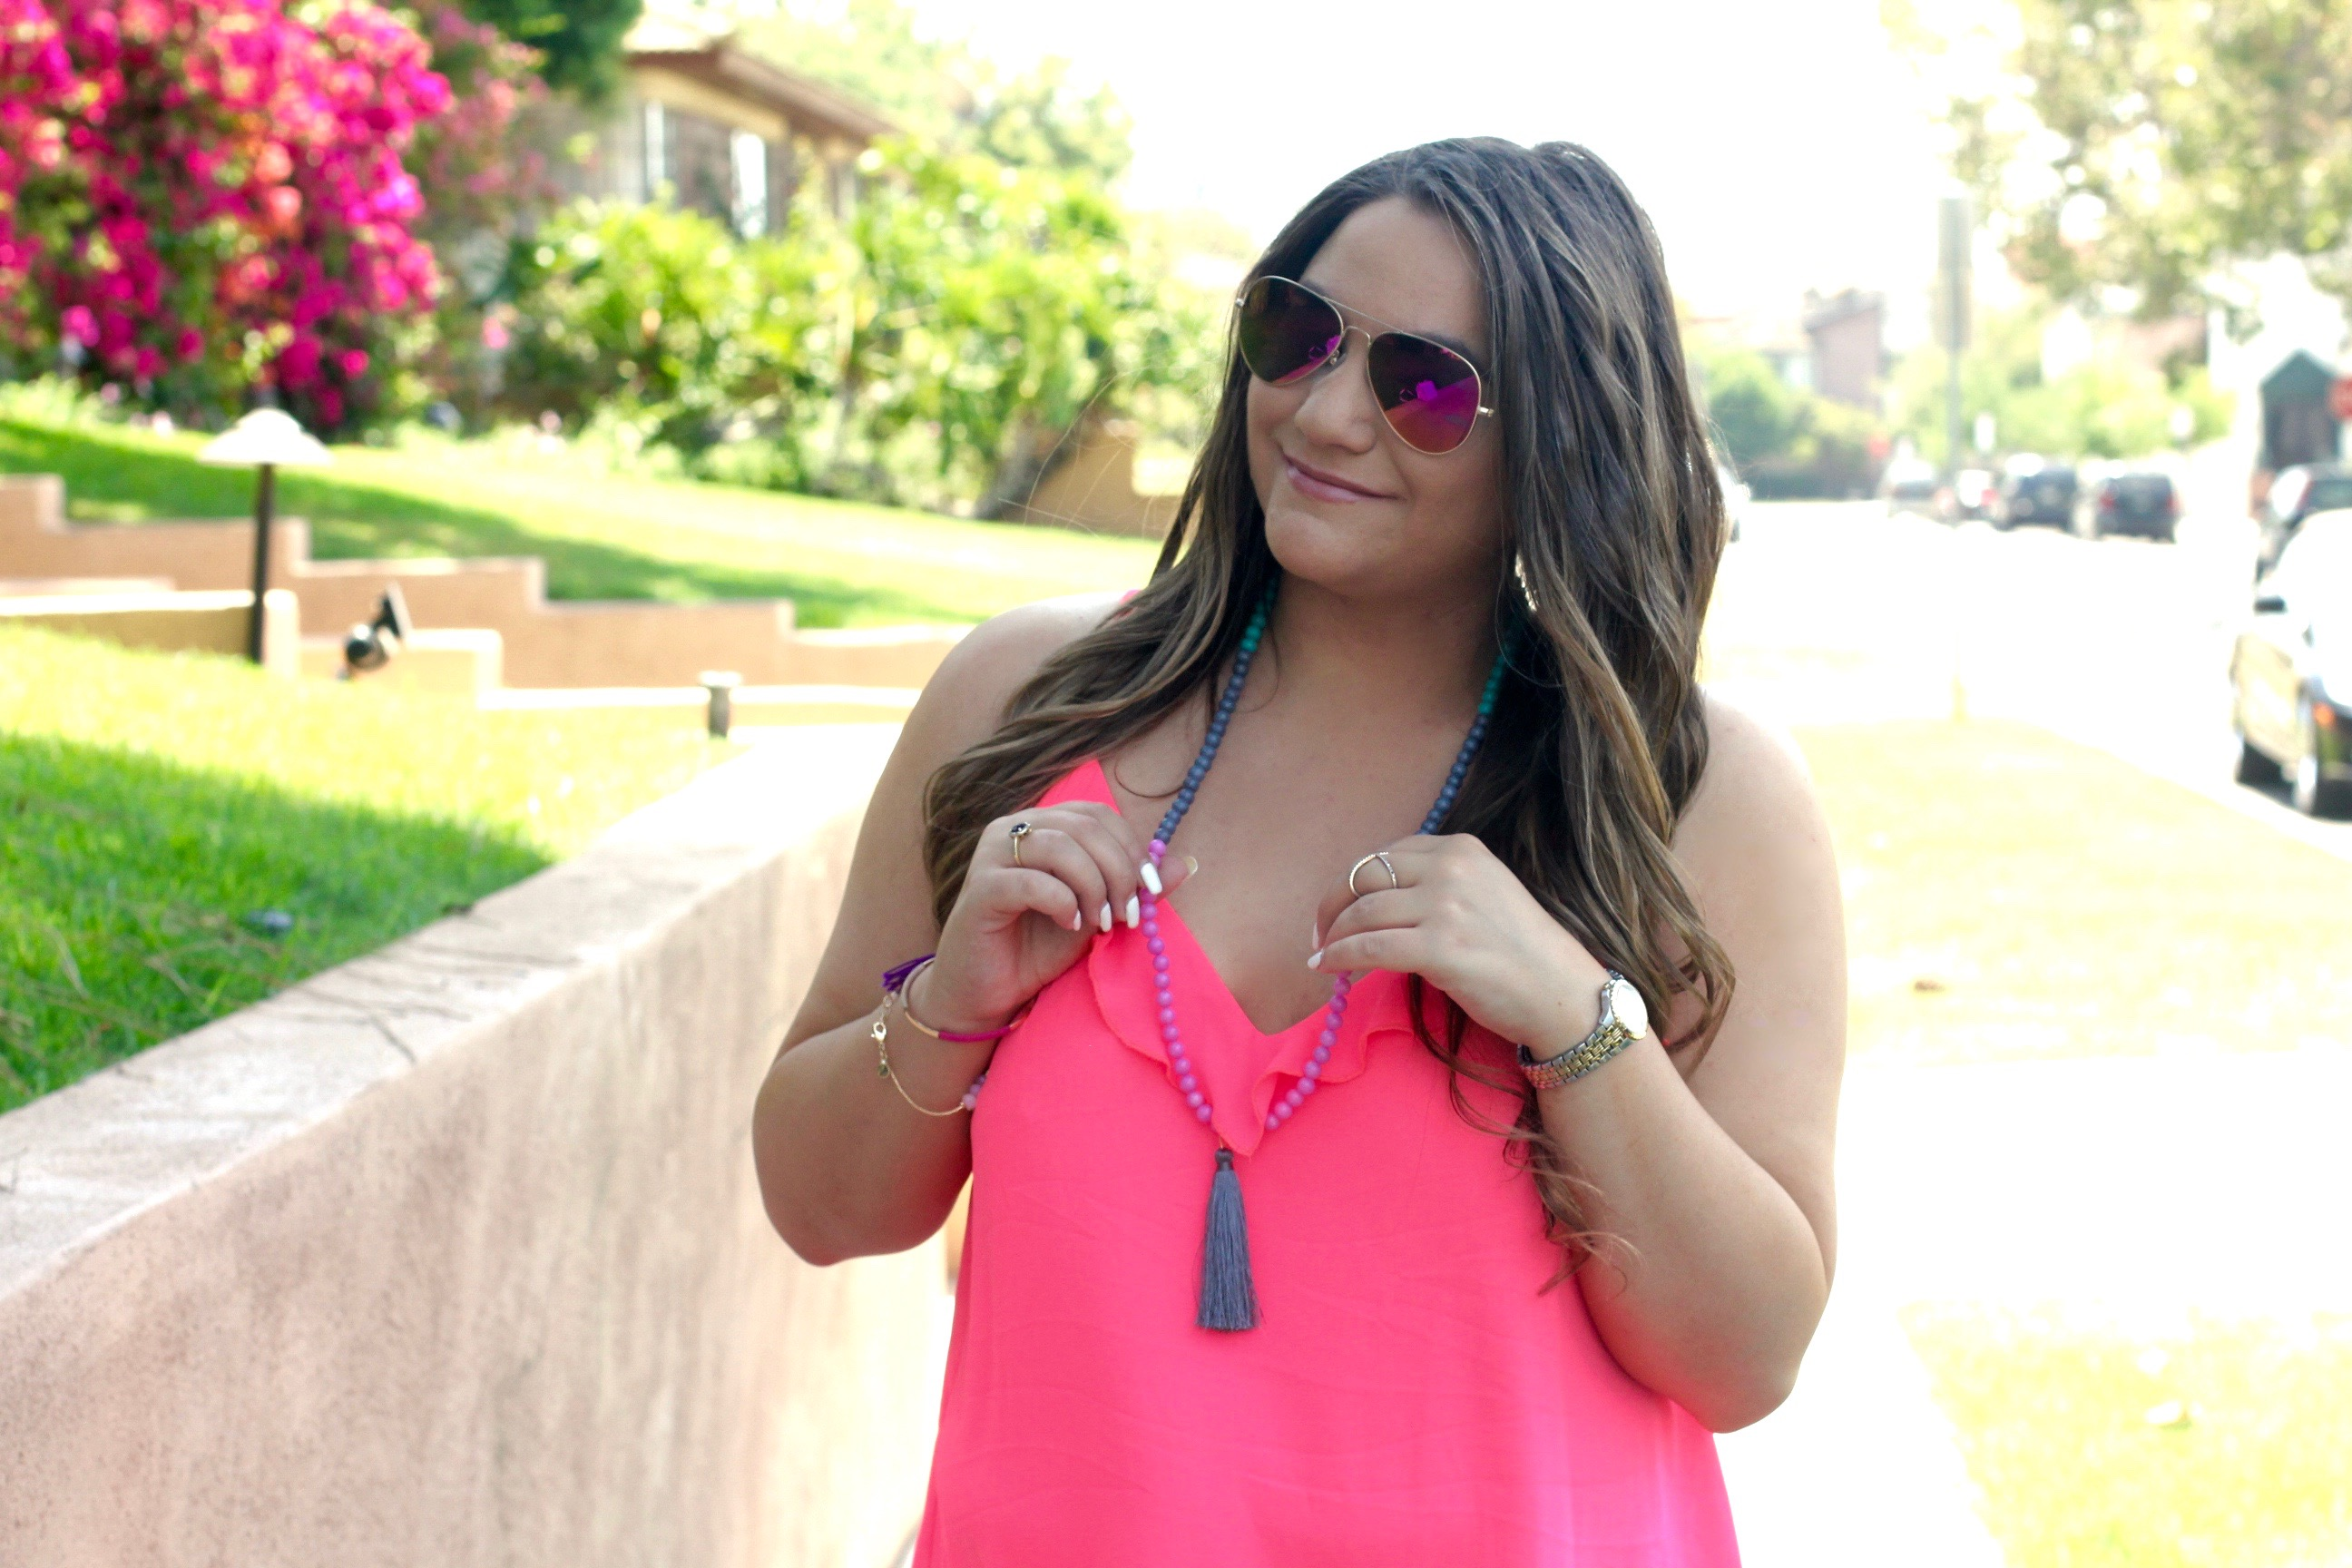 missyonmadison, melissa tierney, la blogger, la style, fashion blogger, style blogger, hot pink camisole, hot pink chiffon camisole, nordstrom rack, nordstrom rack hot pink camisole, old navy, old navy white rockstar jeans, white skinny jeans, how to style neon for summer, how to style white jeans for summer, beaded tassel necklace, shira melody jewelry, nicole lee, nicole lee satchel, white top handle satchel, gray suede pointed toe pumps, gray pumps, summer style, pink mirrored aviators, pink aviators, pink sunglasses,